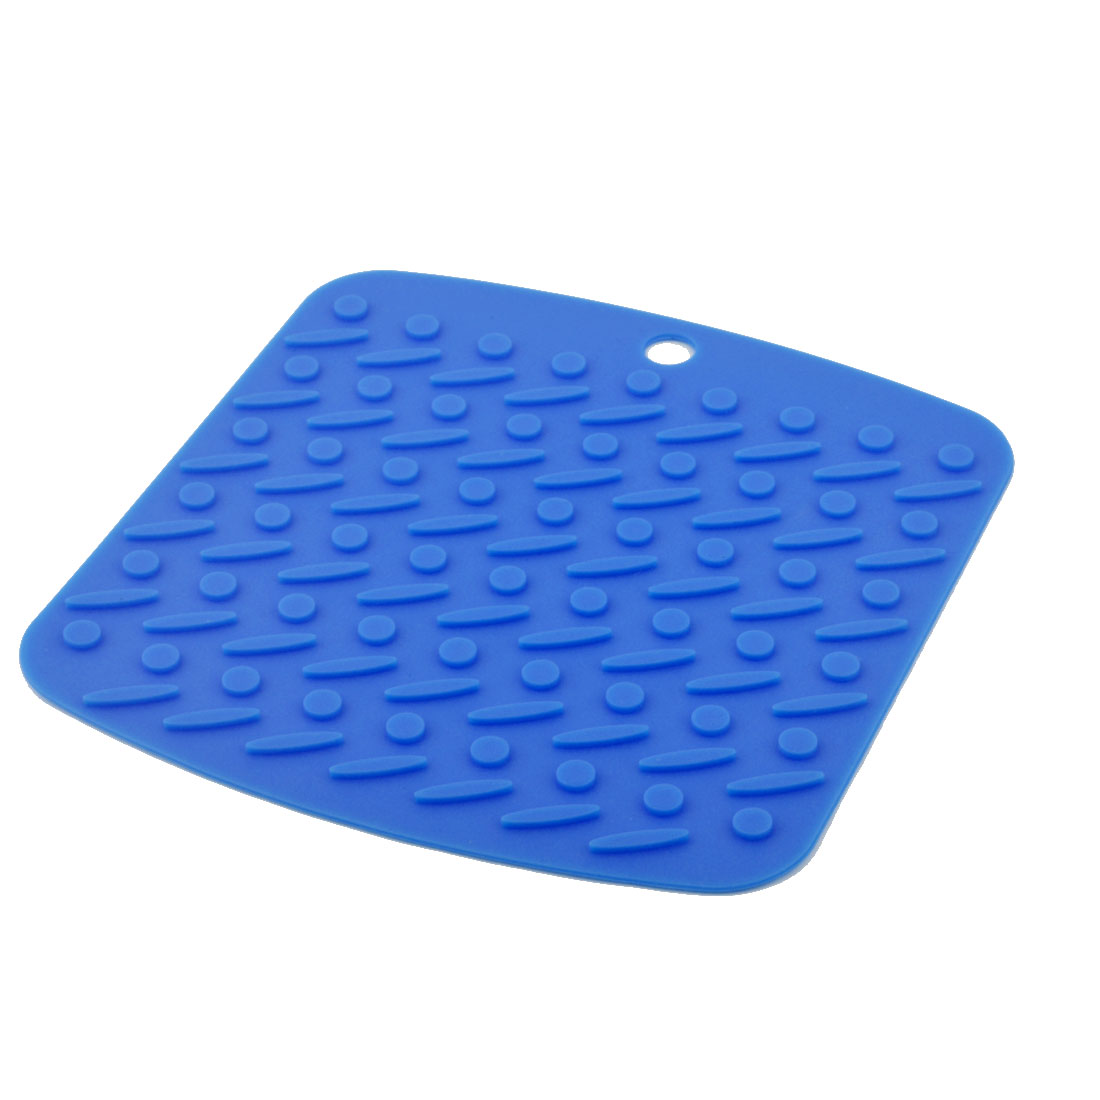 Silicone Nonslip Table Heat Resistant Mat Bowl Cup Cushion Placemat Pad Blue